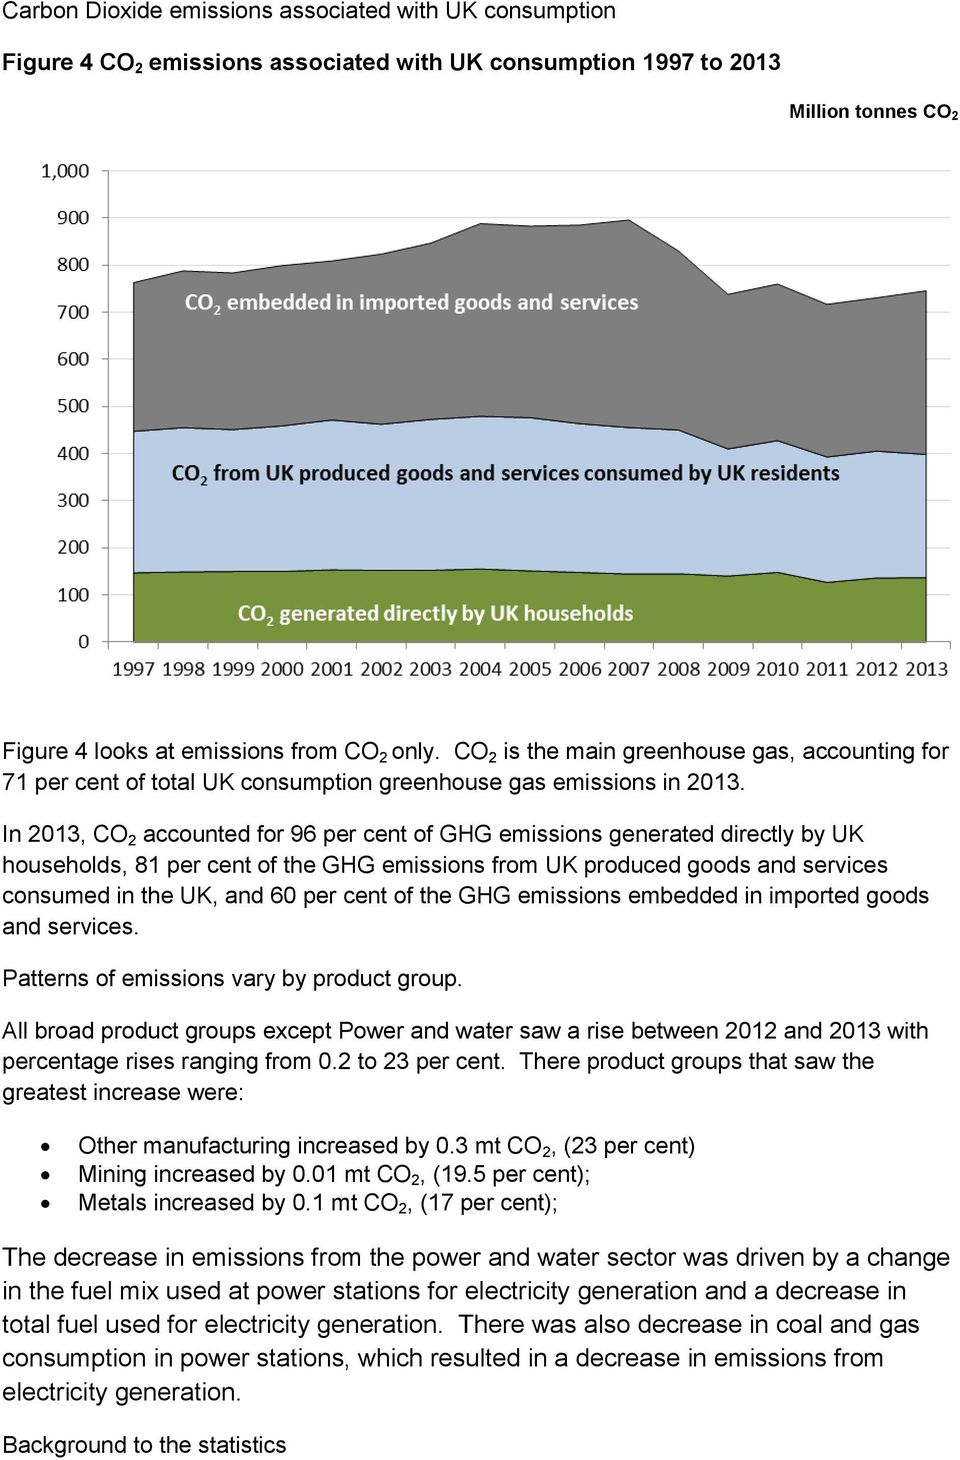 In 2013, CO 2 accounted for 96 per cent of GHG emissions generated directly by UK households, 81 per cent of the GHG emissions from UK produced goods and services consumed in the UK, and 60 per cent